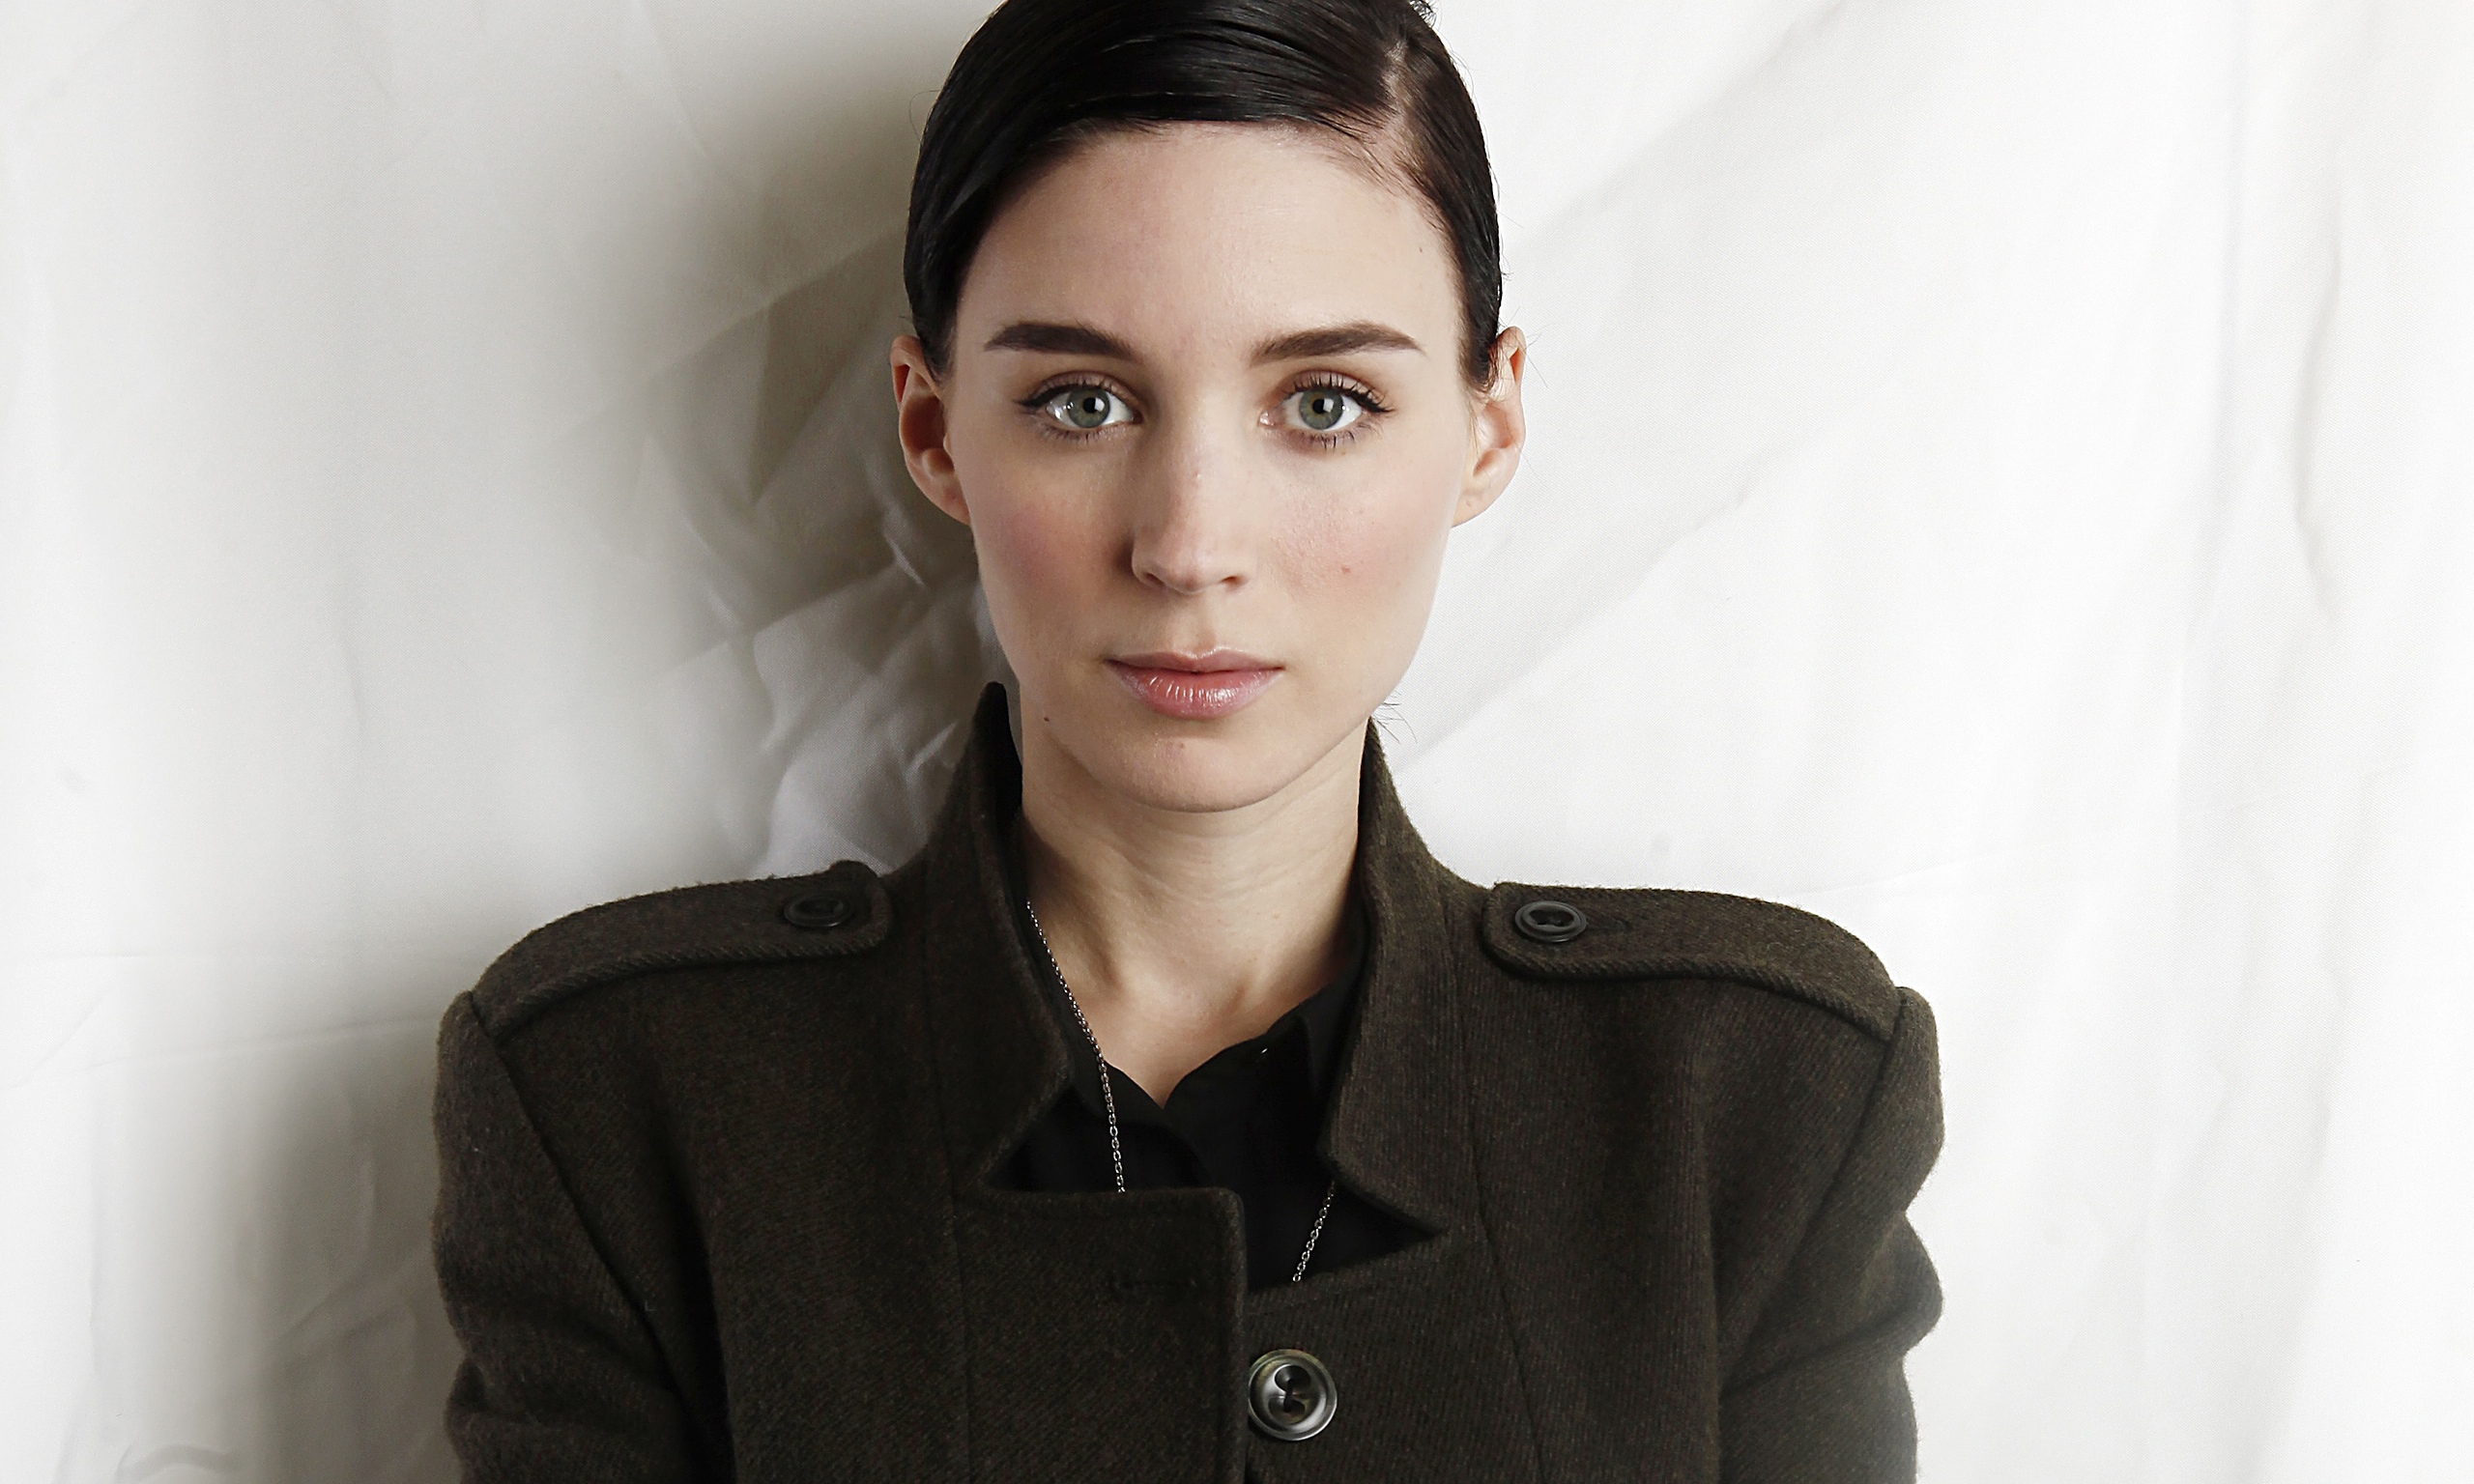 Rooney Mara Wallpapers High Resolution and Quality Download